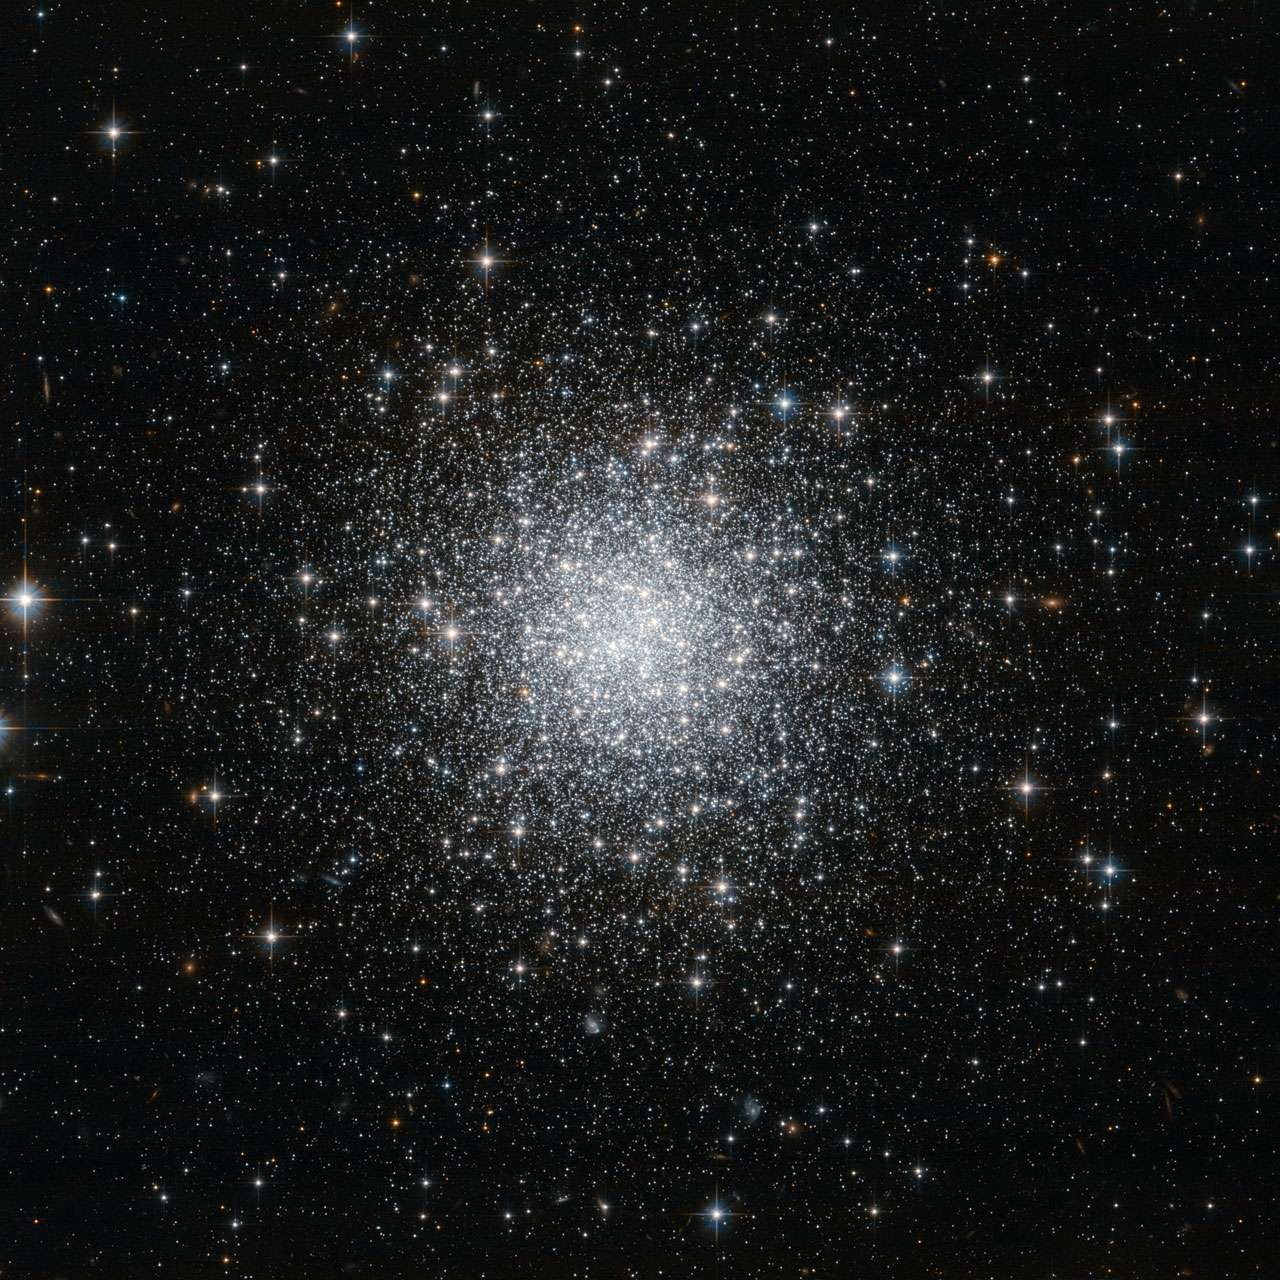 This NASA/ESA Hubble Space Telescope image shows a compact and distant globular star cluster that lies in one of the smallest constellations in the night sky, Delphinus (The Dolphin). Image credit:  ESA/Hubble & NASA